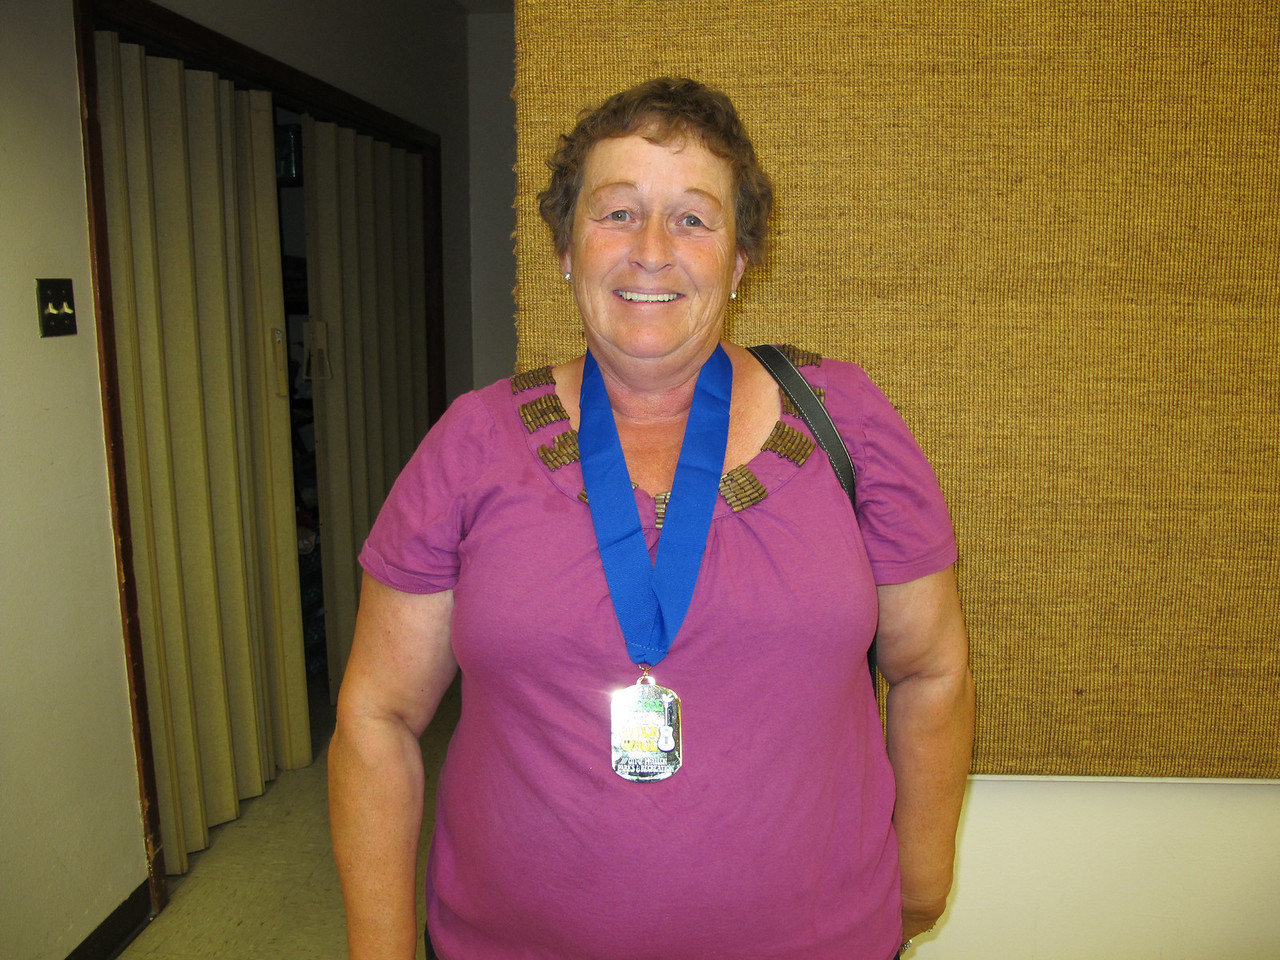 Women's Cribbage 1st Place - Sheryl Doell (Pine to Palm)